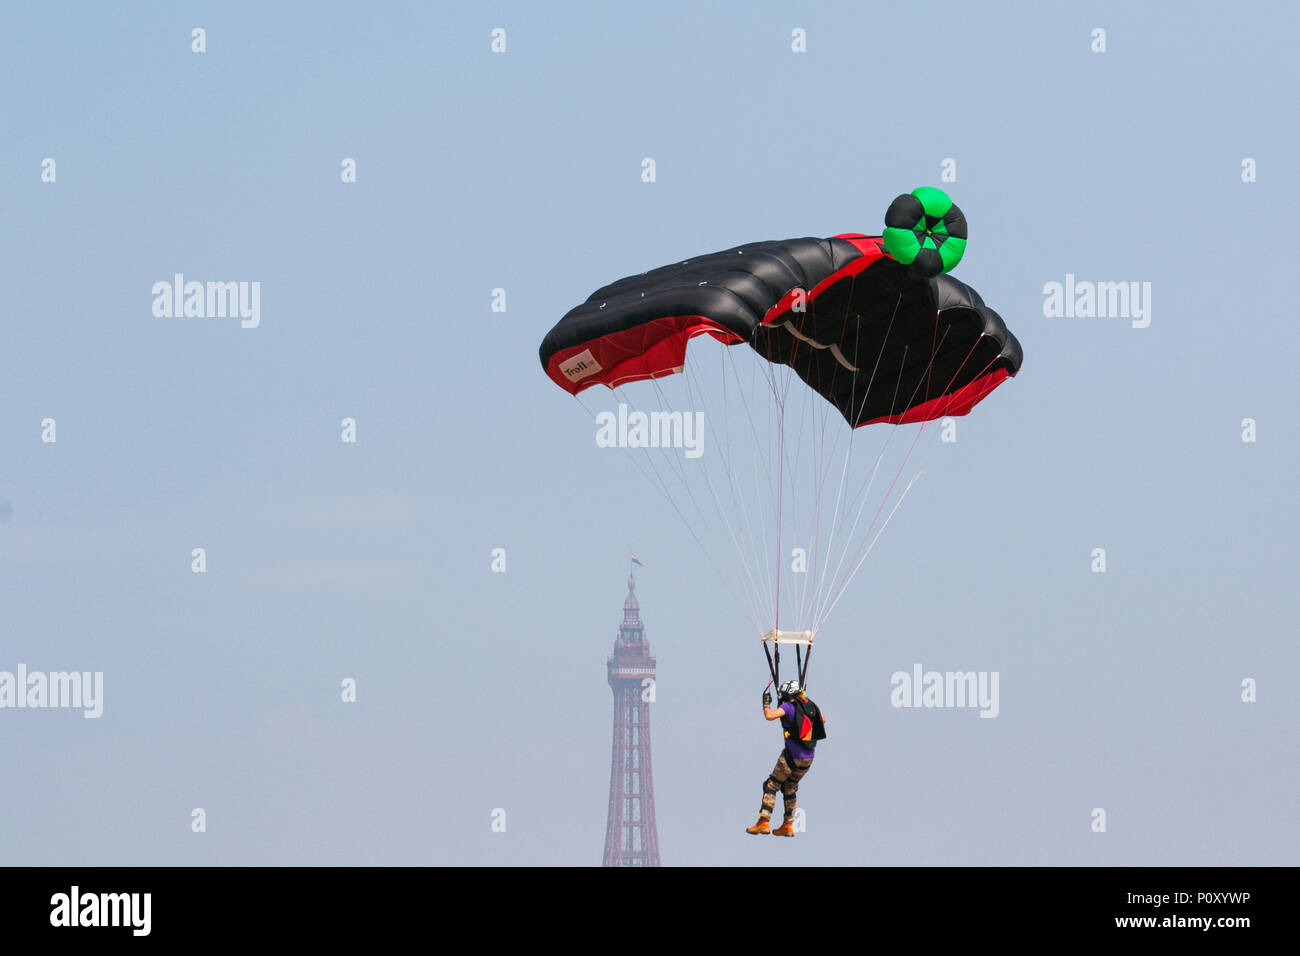 Blackpool, Lancashire, UK. 10/06/2018. The AirgameZ is the definitive BASE jumping competition of the Great British Isles. Elite jumpers from around the world are invited to participate from our 473ft high crane in competition to see who has the nerve, skill & style to thrill the crowds & win the judges scorecards. From this altitude jumpers can expect a solid delay of over 3 seconds, perform staged-deployment multi-ways, AAF style linked exits & aerobatic multi-axis rotations on descent. Credit:MediaWorldImages/AlamyLiveNews. - Stock Image